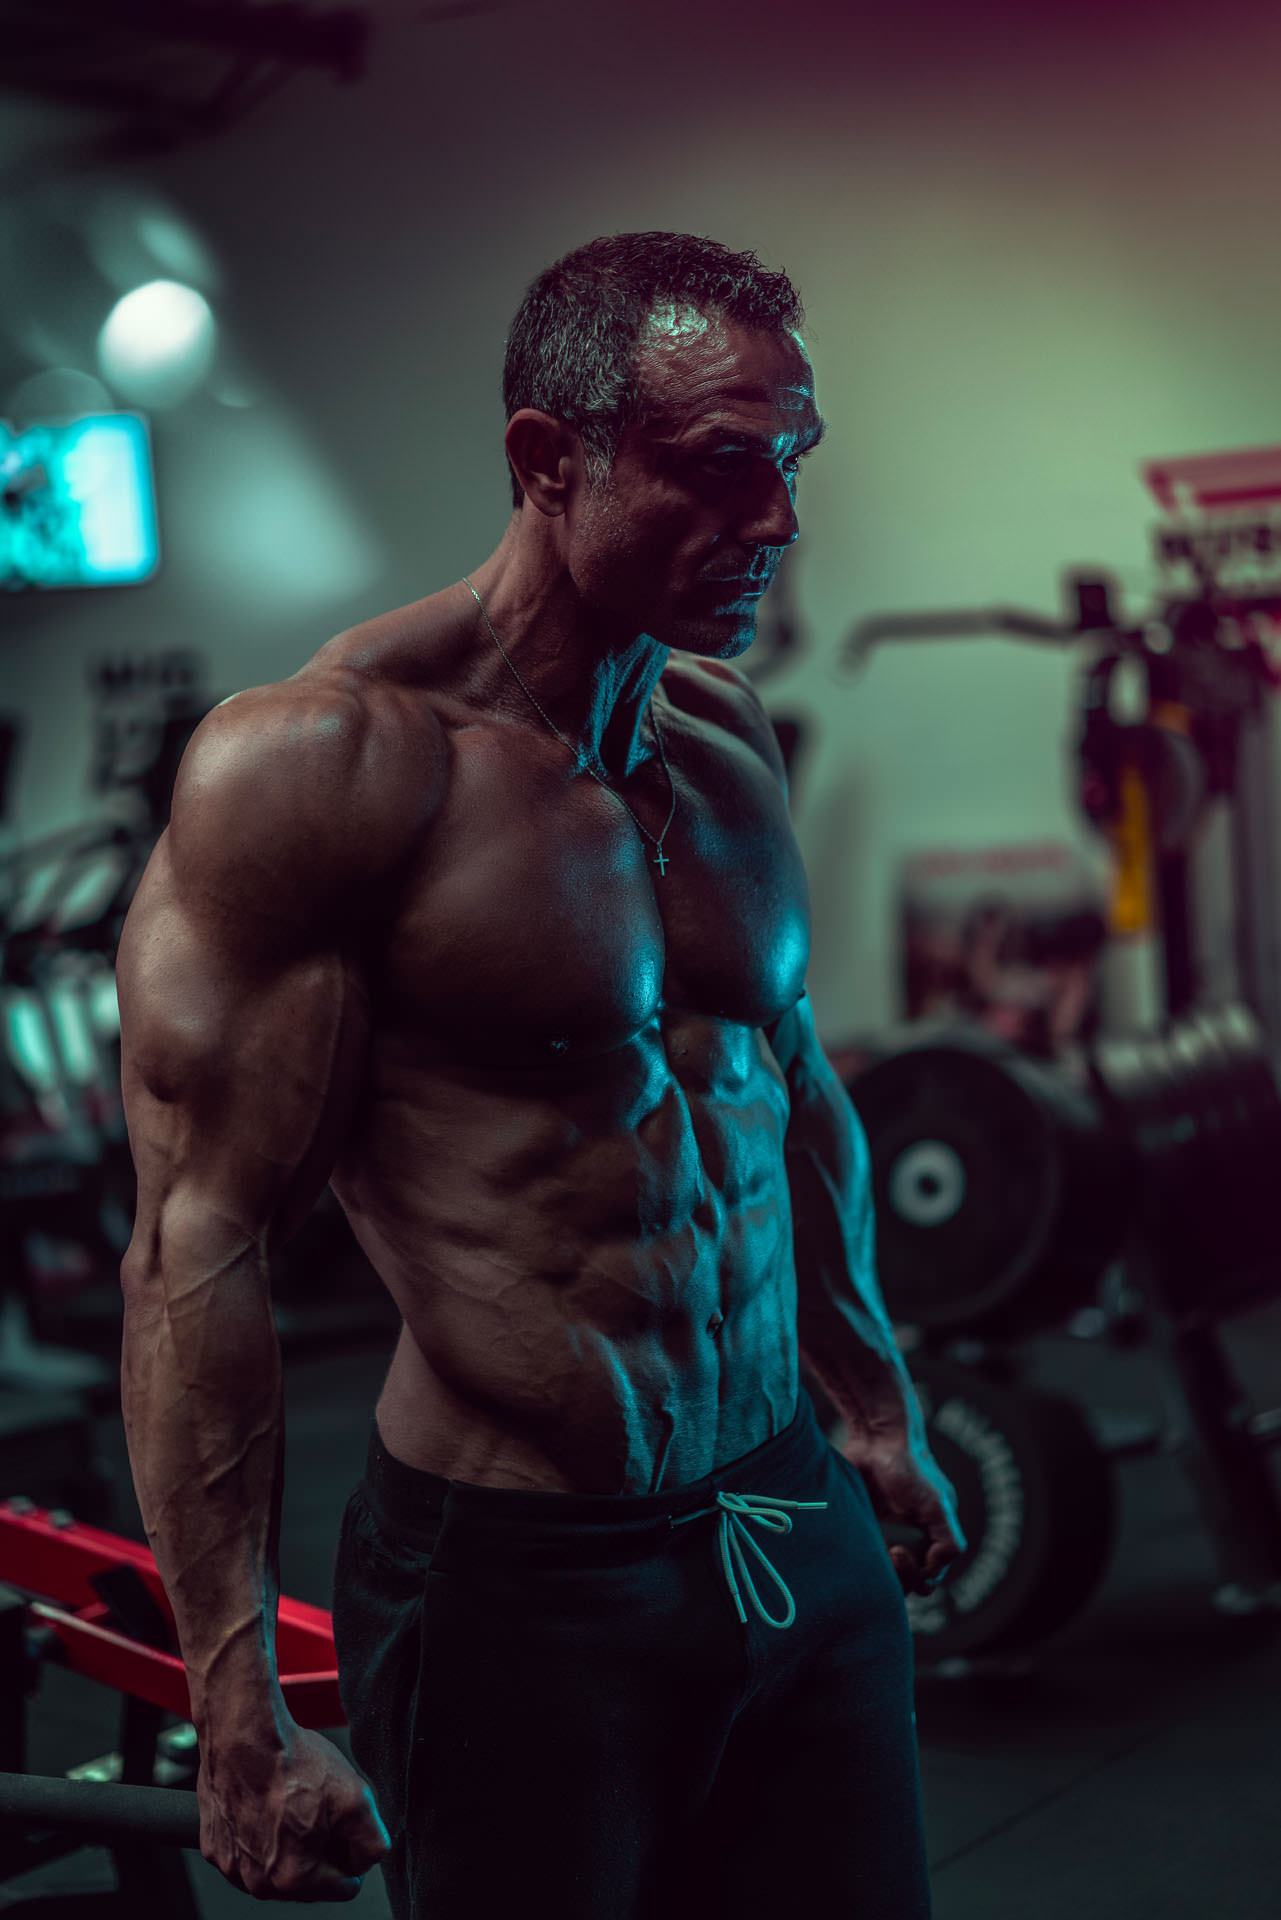 2020-03-15 - Enzo - Muscle Factory - 01680 - 1920px